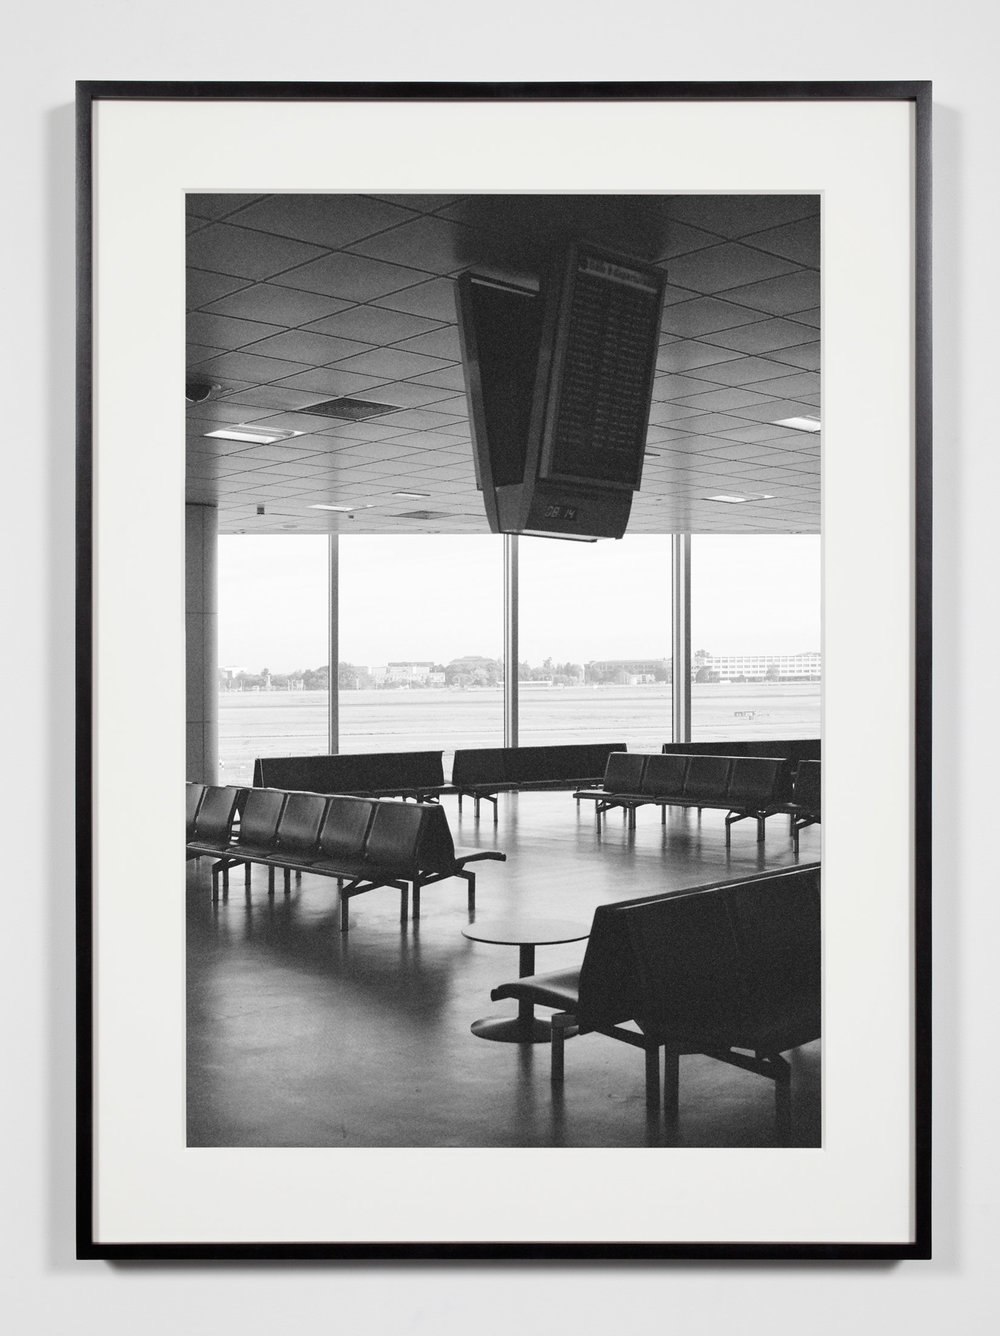 Airport Lounge, Belfast, Ireland, September 10, 2010    2011   Epson Ultrachrome K3 archival ink jet print on Hahnemühle Photo Rag paper  36 3/8 x 26 3/8 inches   A Diagram of Forces, 2011